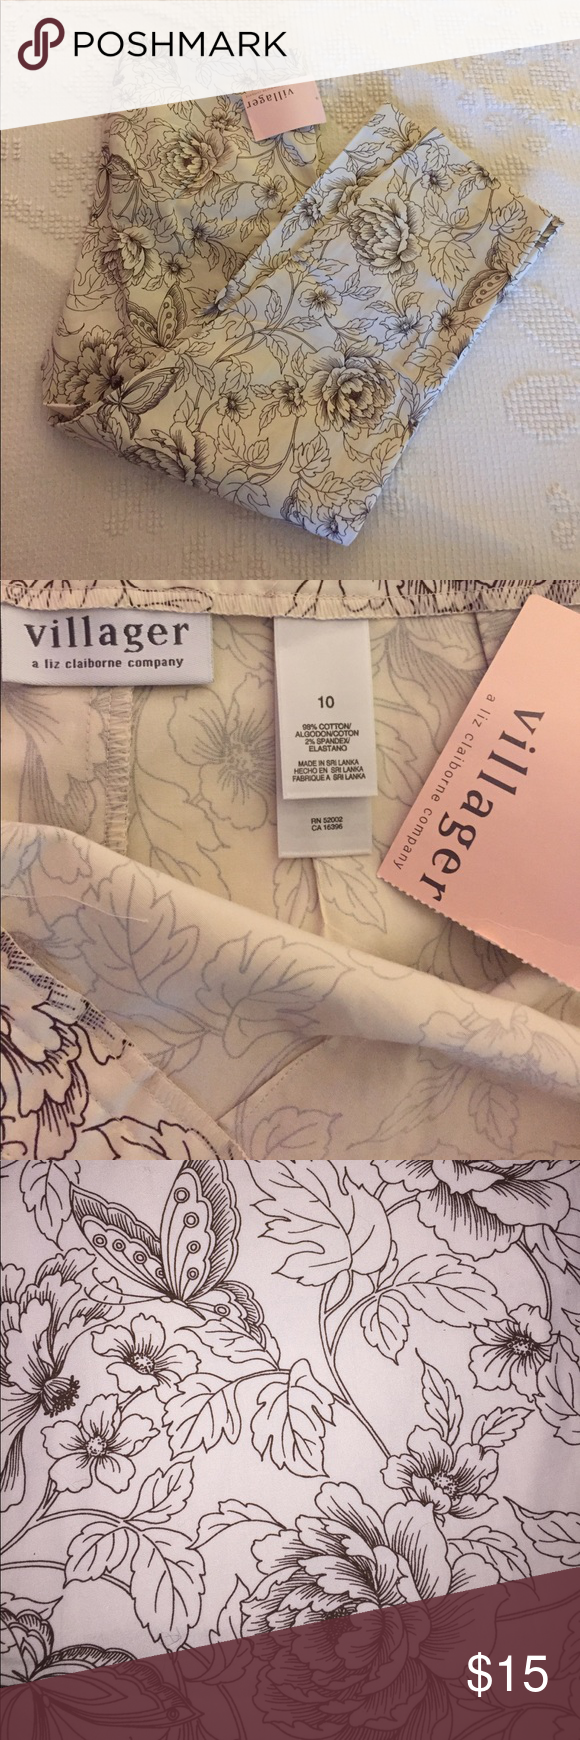 """NWT Liz Claiborne Villager Cotton Ankle Pants NWT Liz Claiborne Villager Cotton Ankle Pants- size 10, 31"""" waist, 23"""" inseam. Cotton with 2% spandex for Stretch. Pretty brown on cream line design. 3rd photo is truest to actual color. Liz Claiborne Pants Ankle & Cropped"""